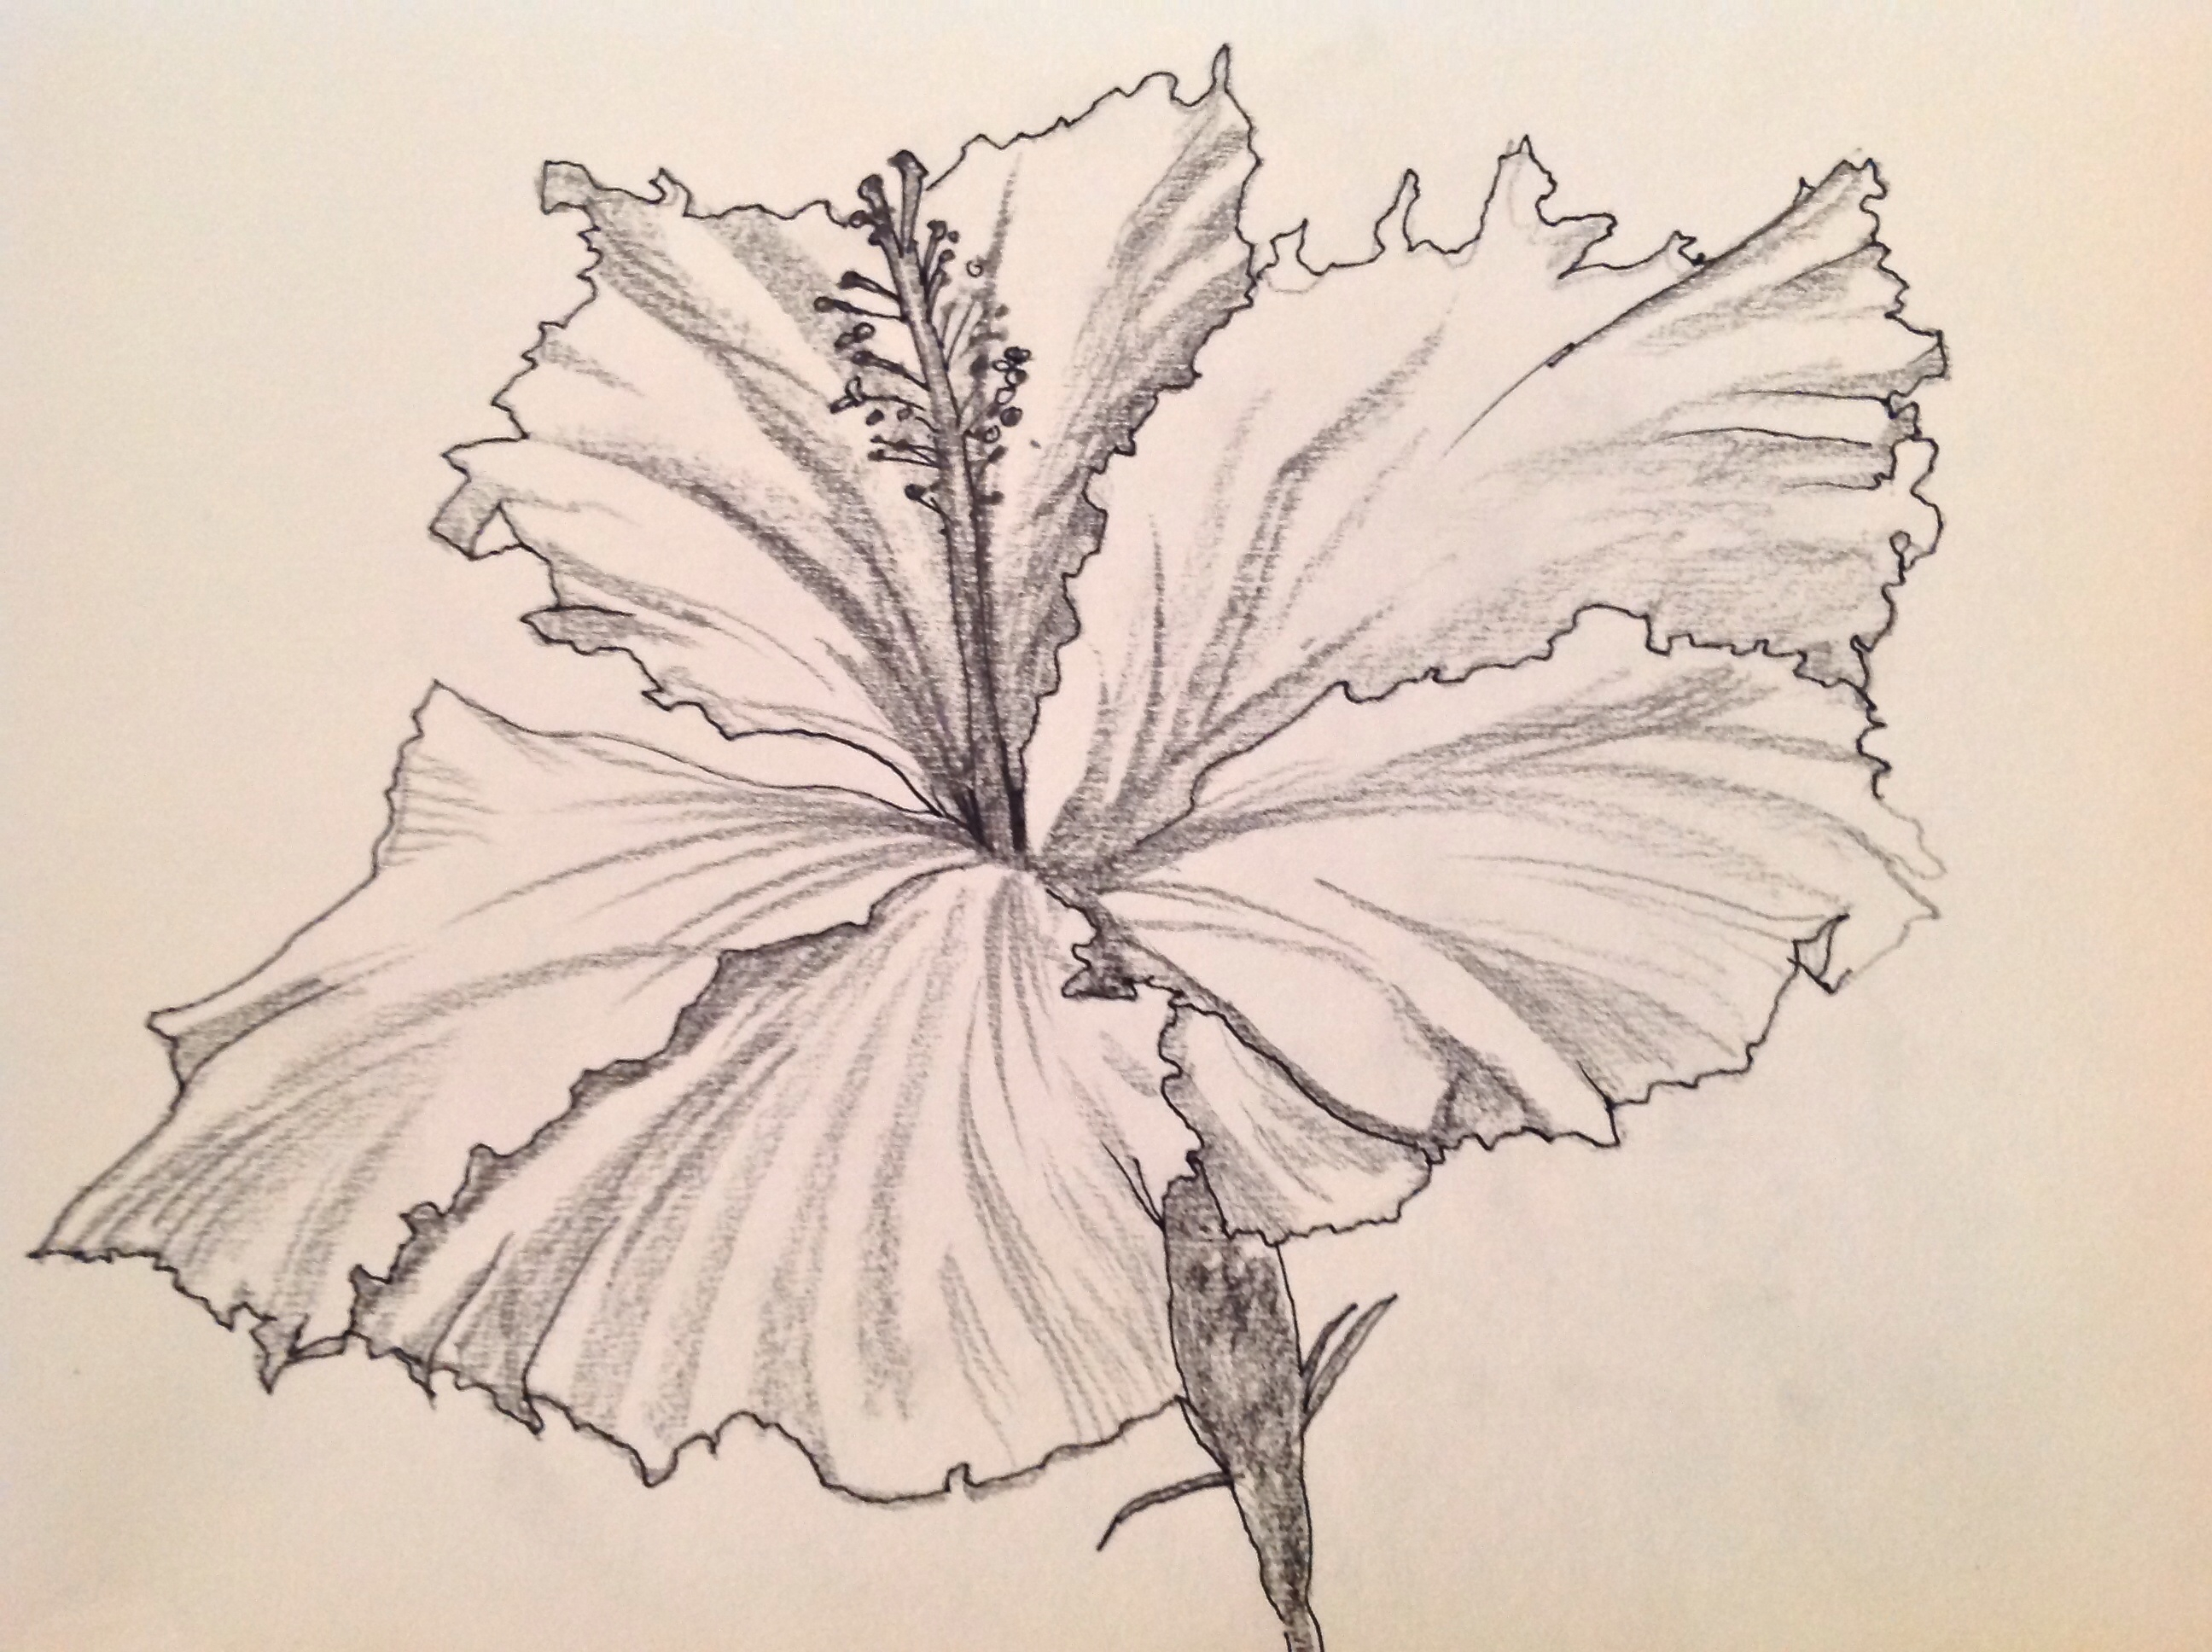 2592x1936 Hibiscus Plant Drawn Sketches Hibiscus Flower Pen And Ink Drawings